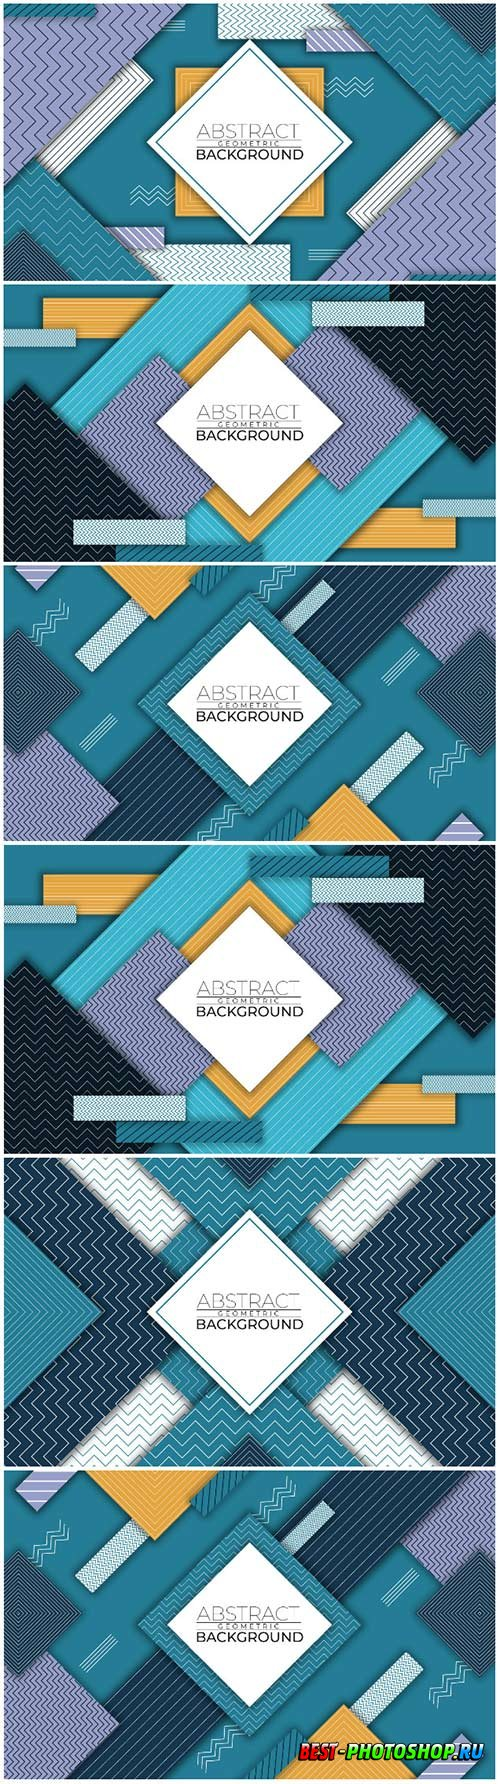 Modern abstract geometric vector background style